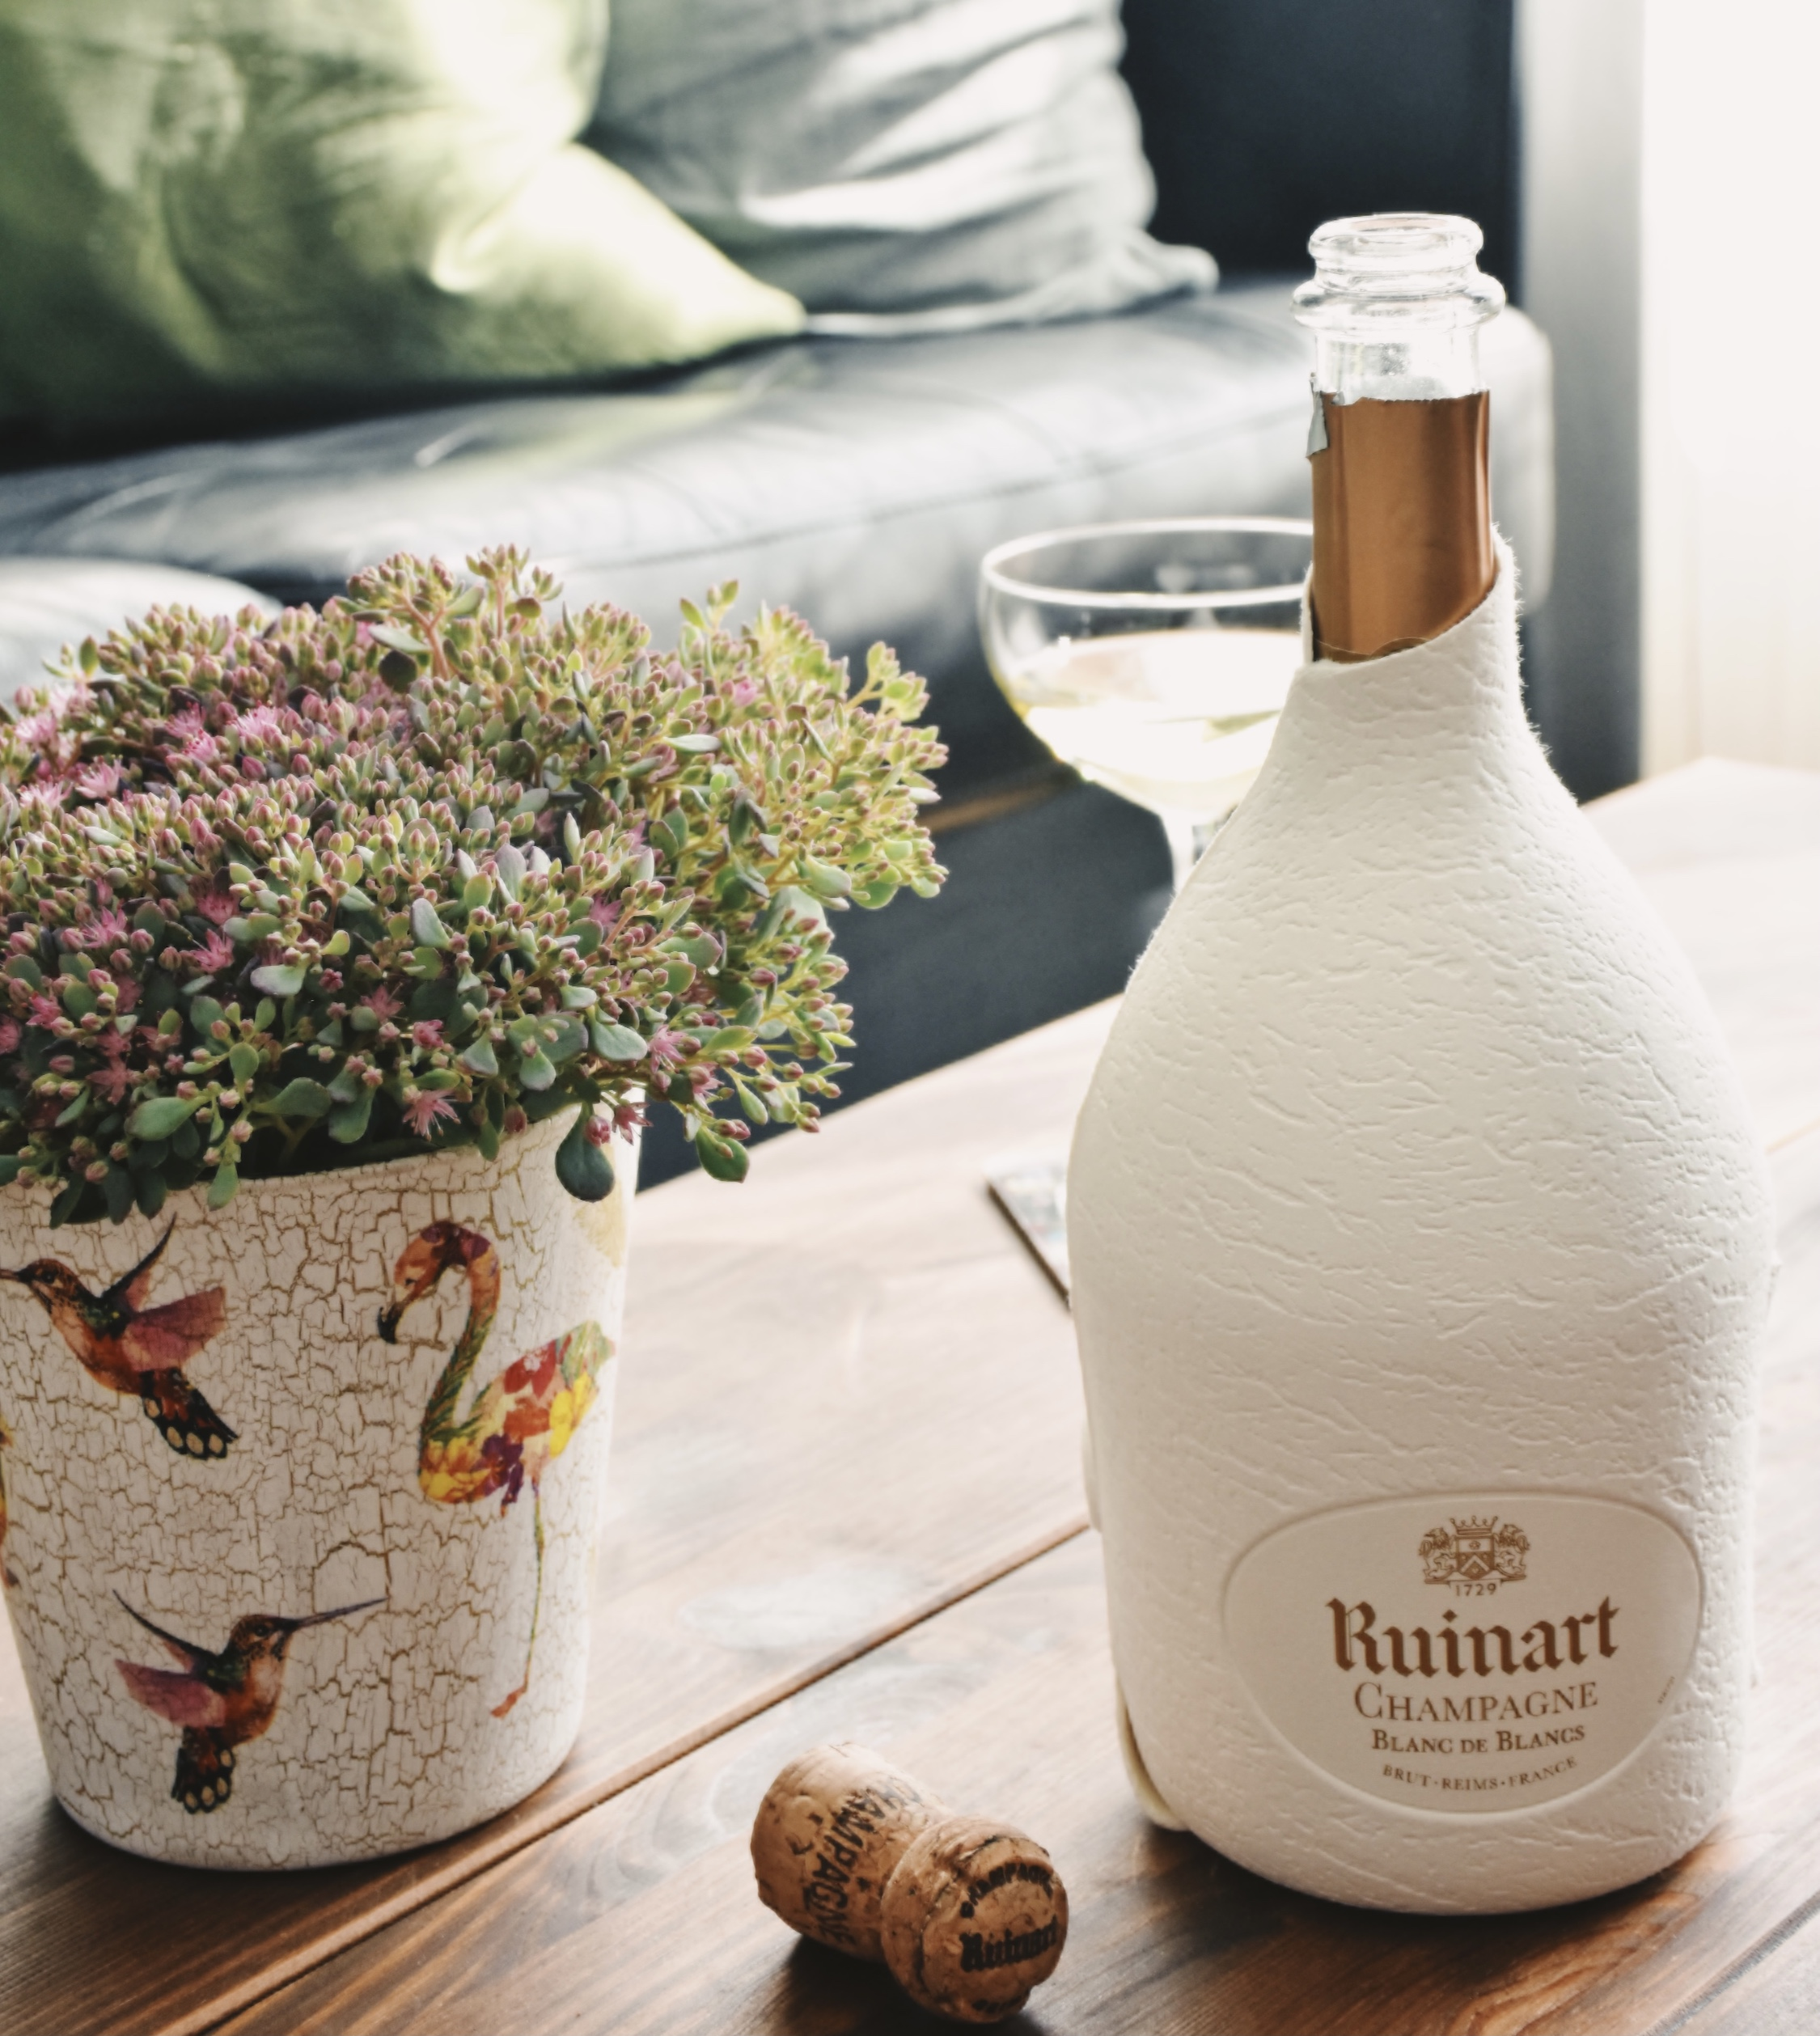 Ruinart's Second Skin is a new innovative recyclable gift packaging